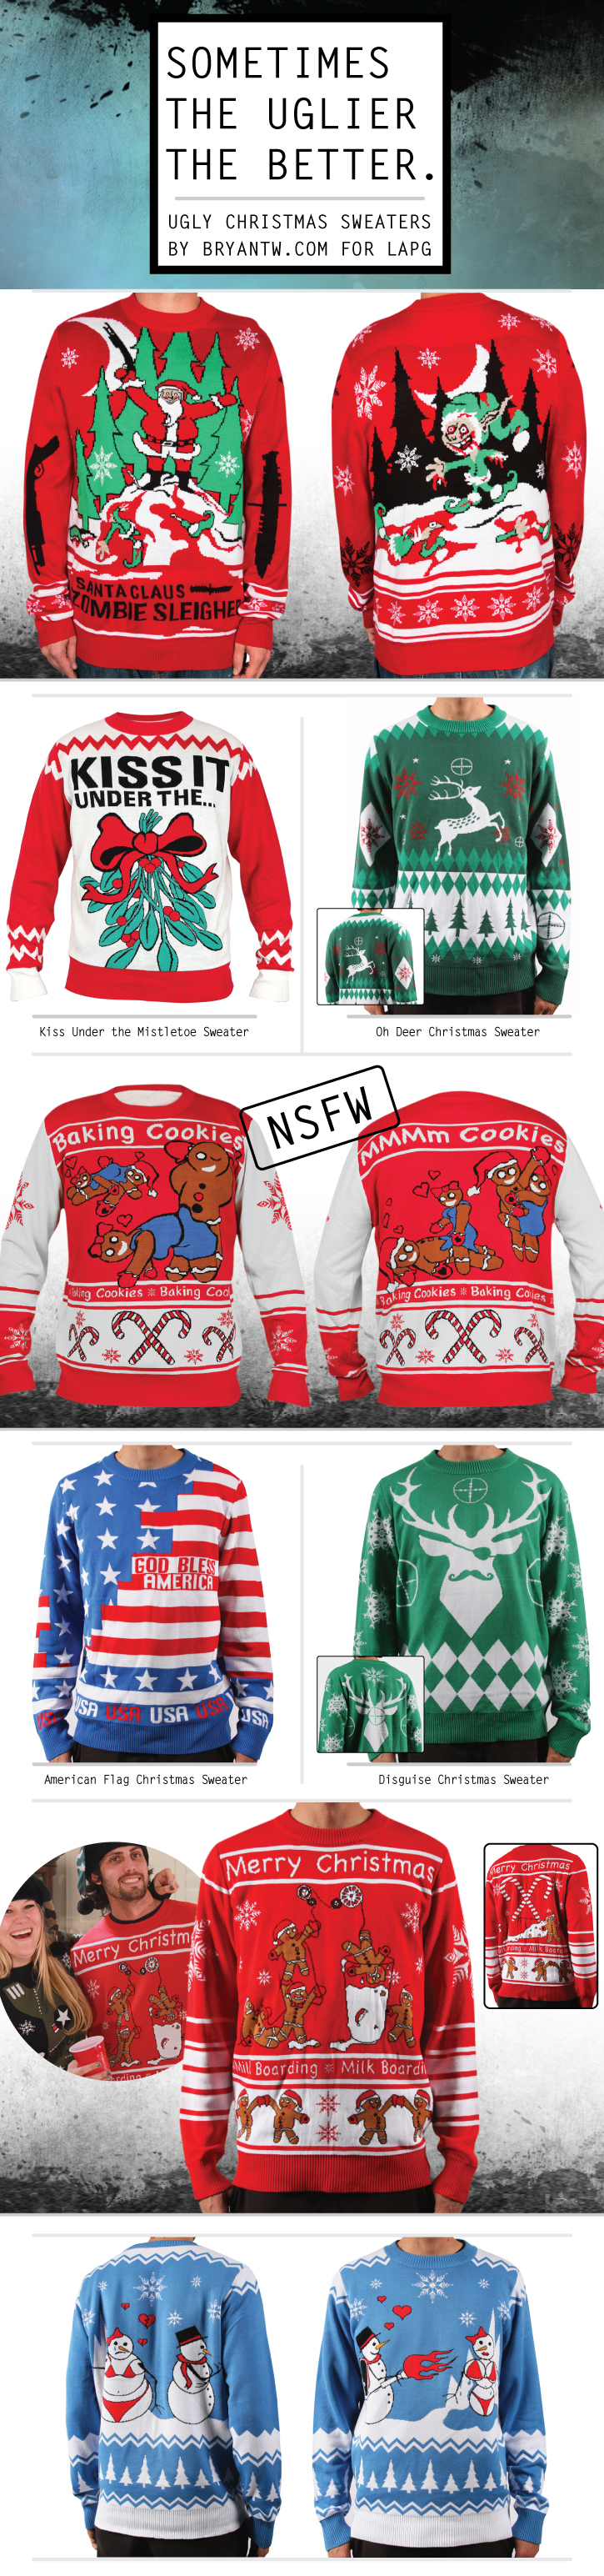 Sometimes The Uglier The Better! Ugly Christmas Sweater on Behance